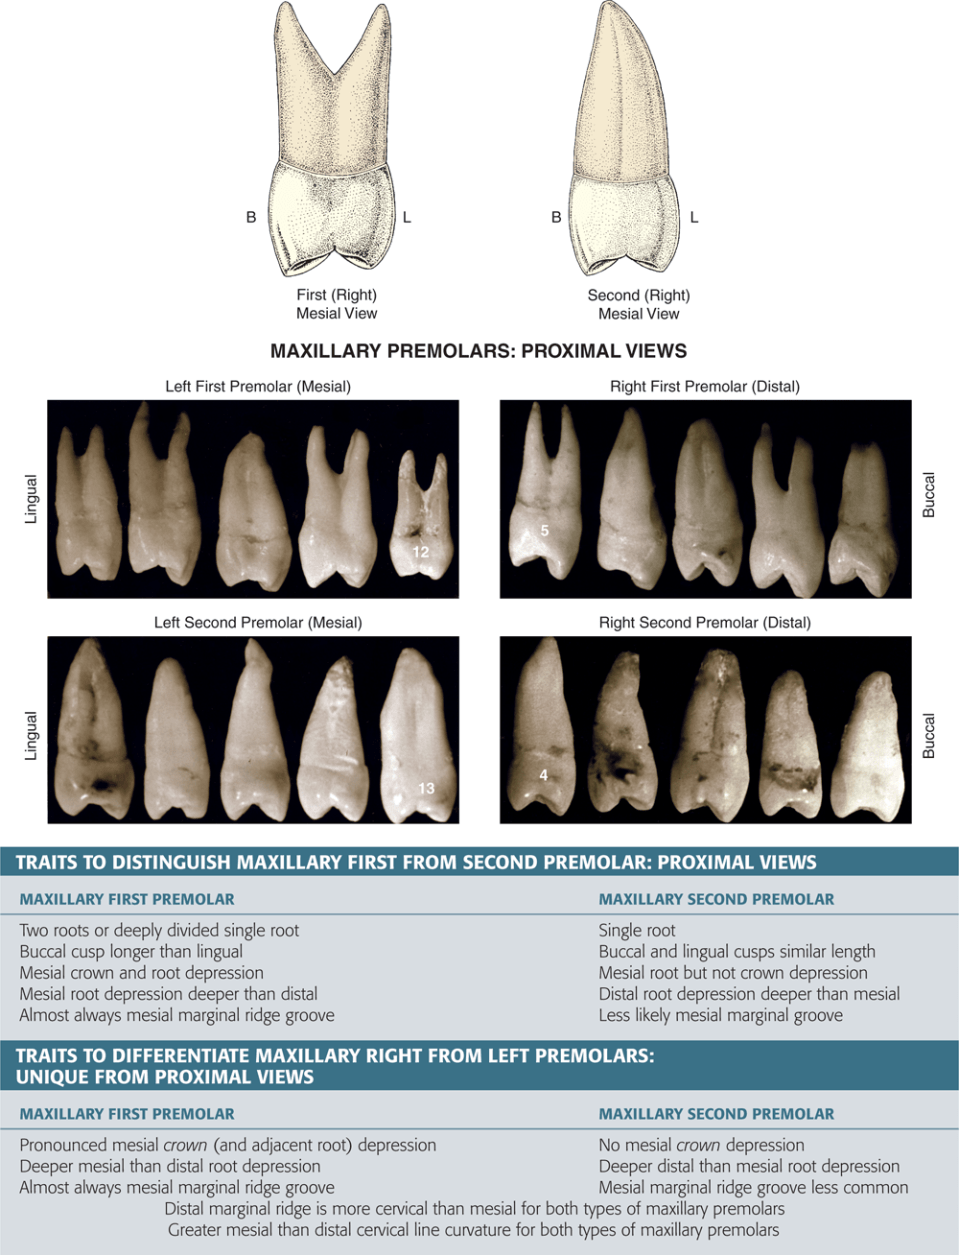 An illustration and four photos show the proximal views of maxillary premolars.